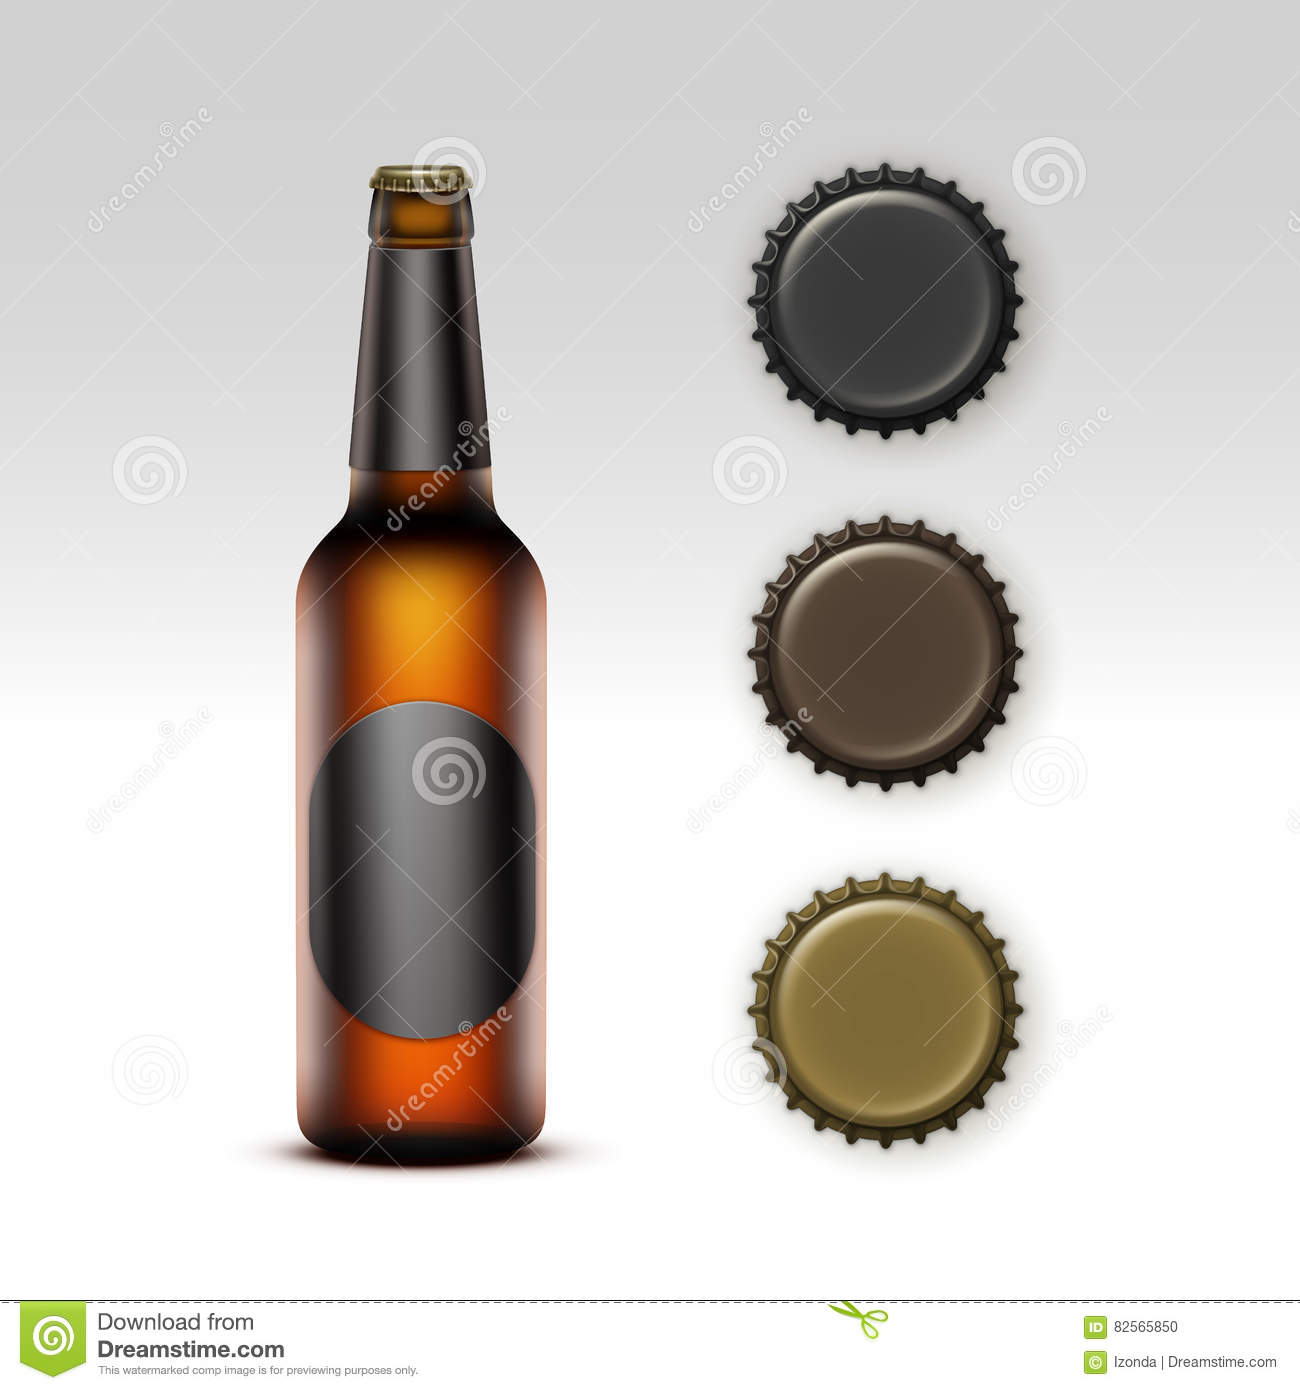 Glass Transparent Bottle of Beer with label, Caps